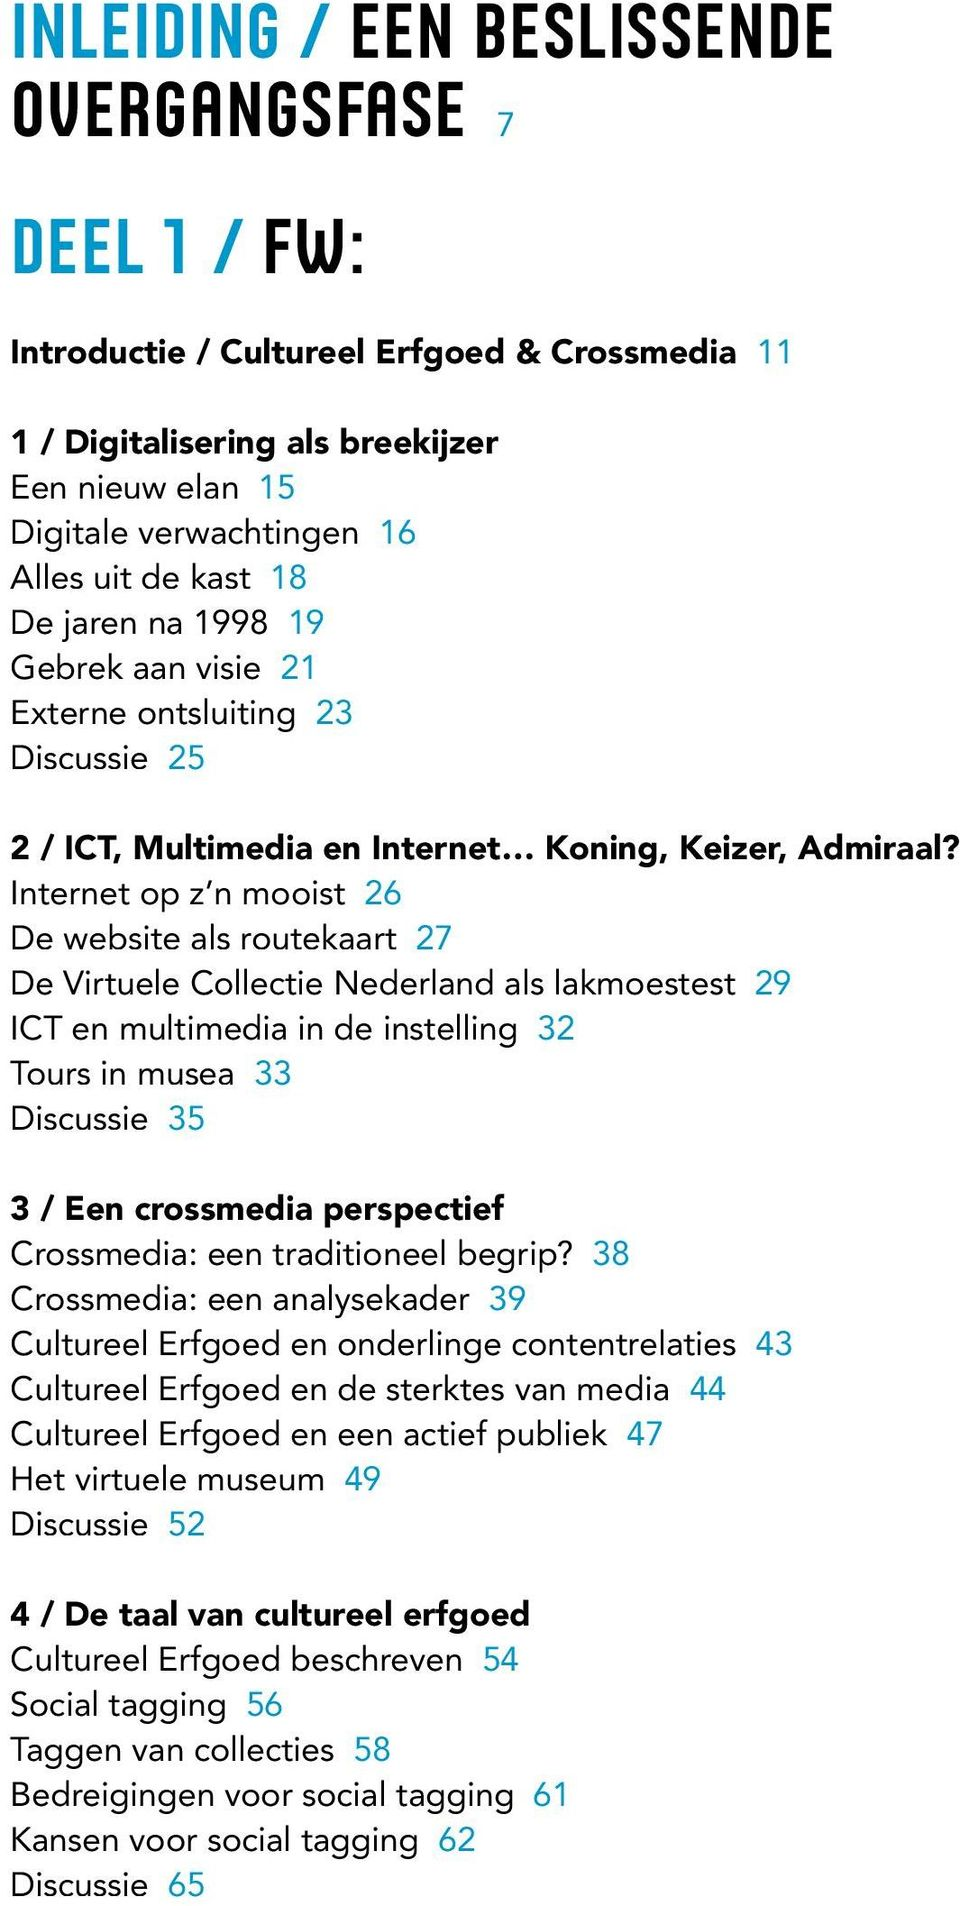 Internet op z n mooist 26 De website als routekaart 27 De Virtuele Collectie Nederland als lakmoestest 29 ICT en multimedia in de instelling 32 Tours in musea 33 Discussie 35 3 / Een crossmedia